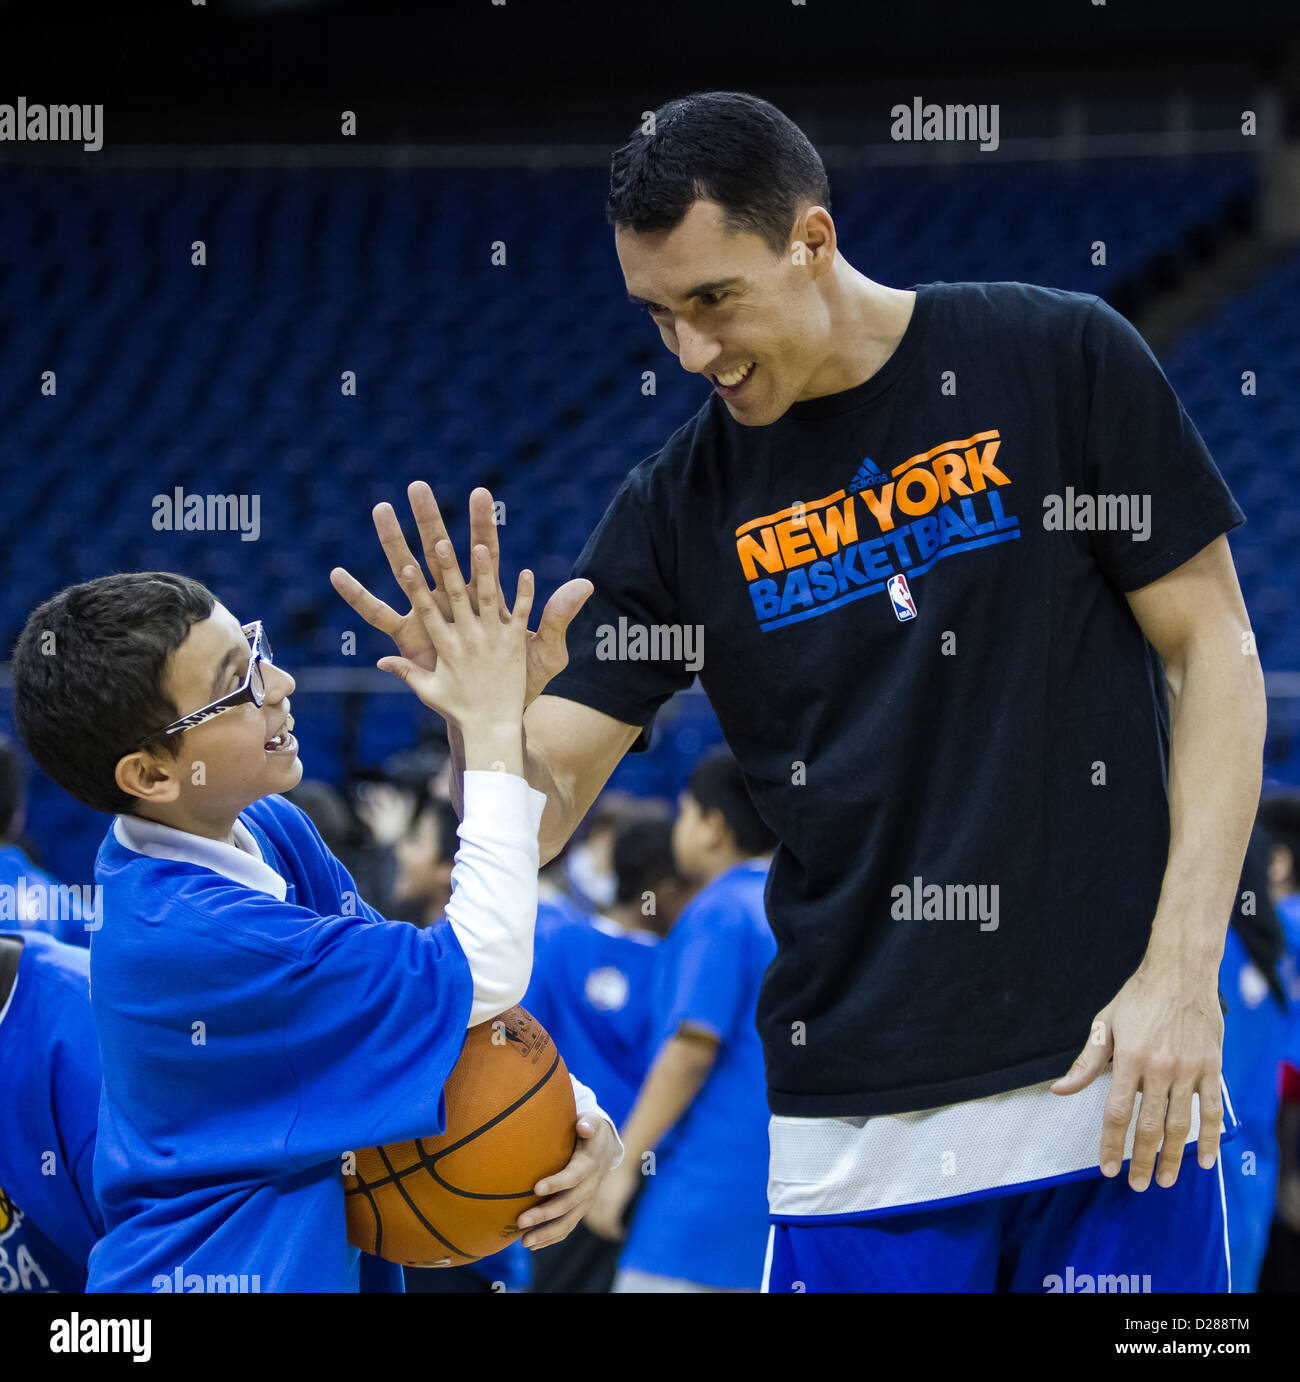 Nba Cares Stockfotos & Nba Cares Bilder - Alamy